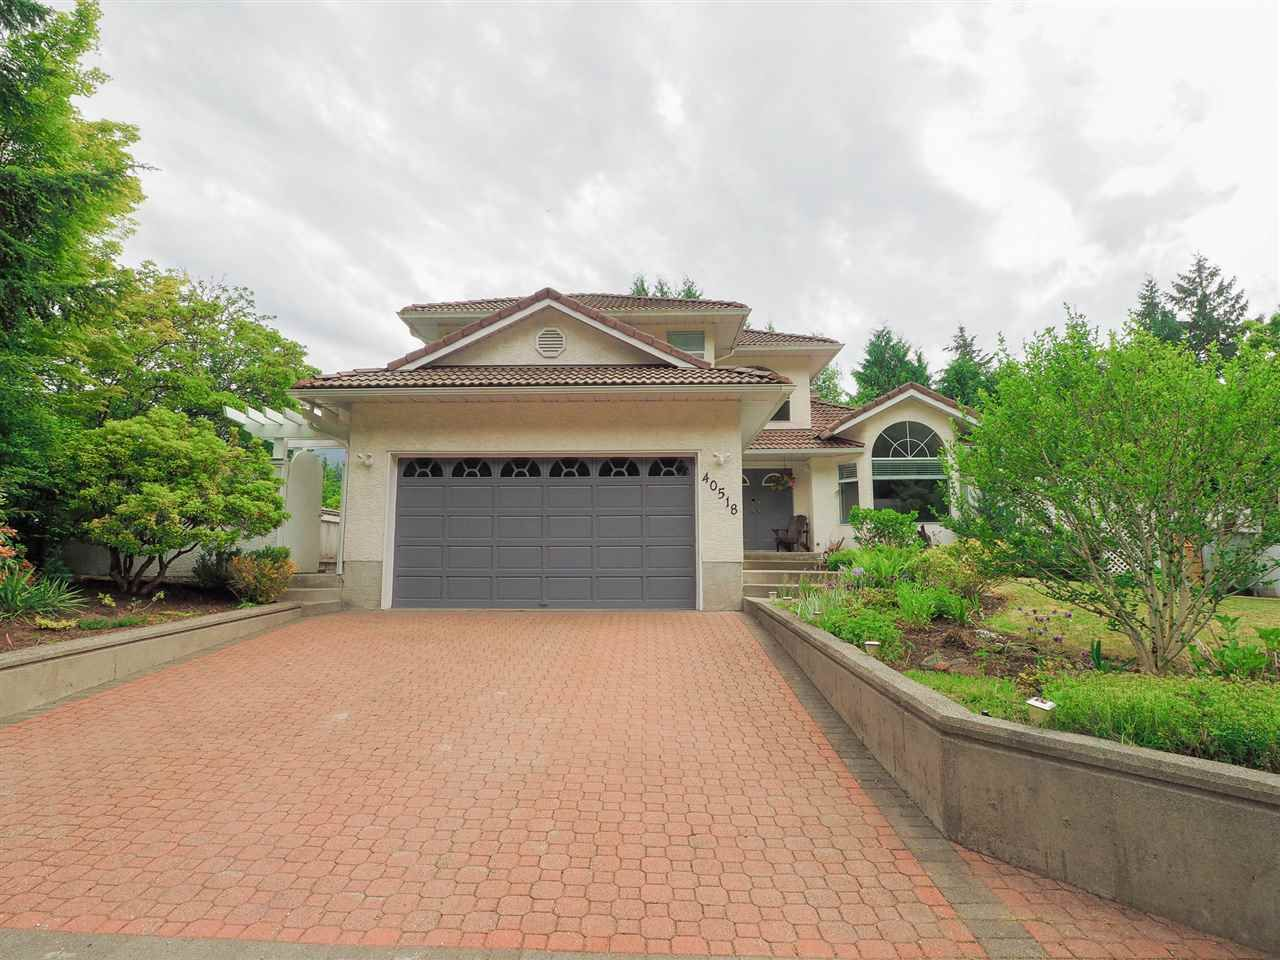 """Main Photo: 40518 N HIGHLANDS Way in Squamish: Garibaldi Highlands House for sale in """"Garibaldi Highlands"""" : MLS®# R2462052"""